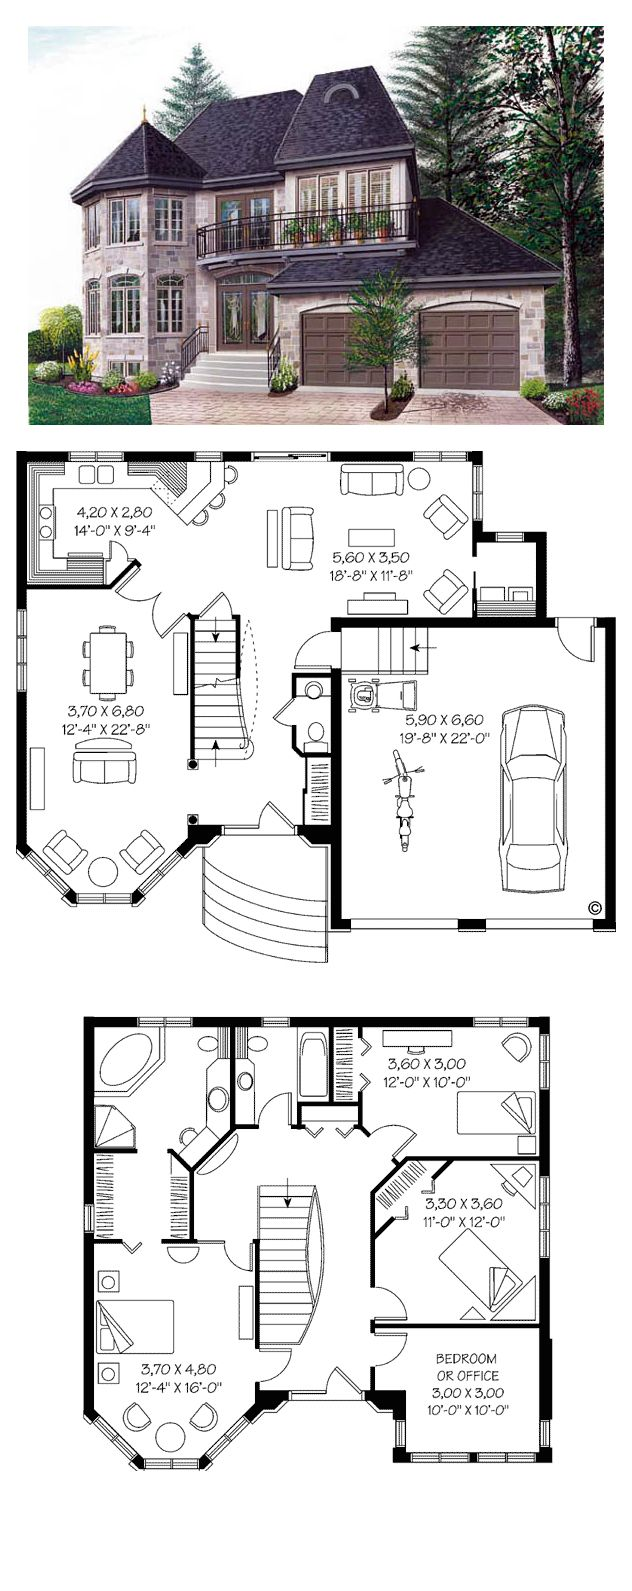 Best 25 sims house ideas on pinterest sims house plans My family house plans